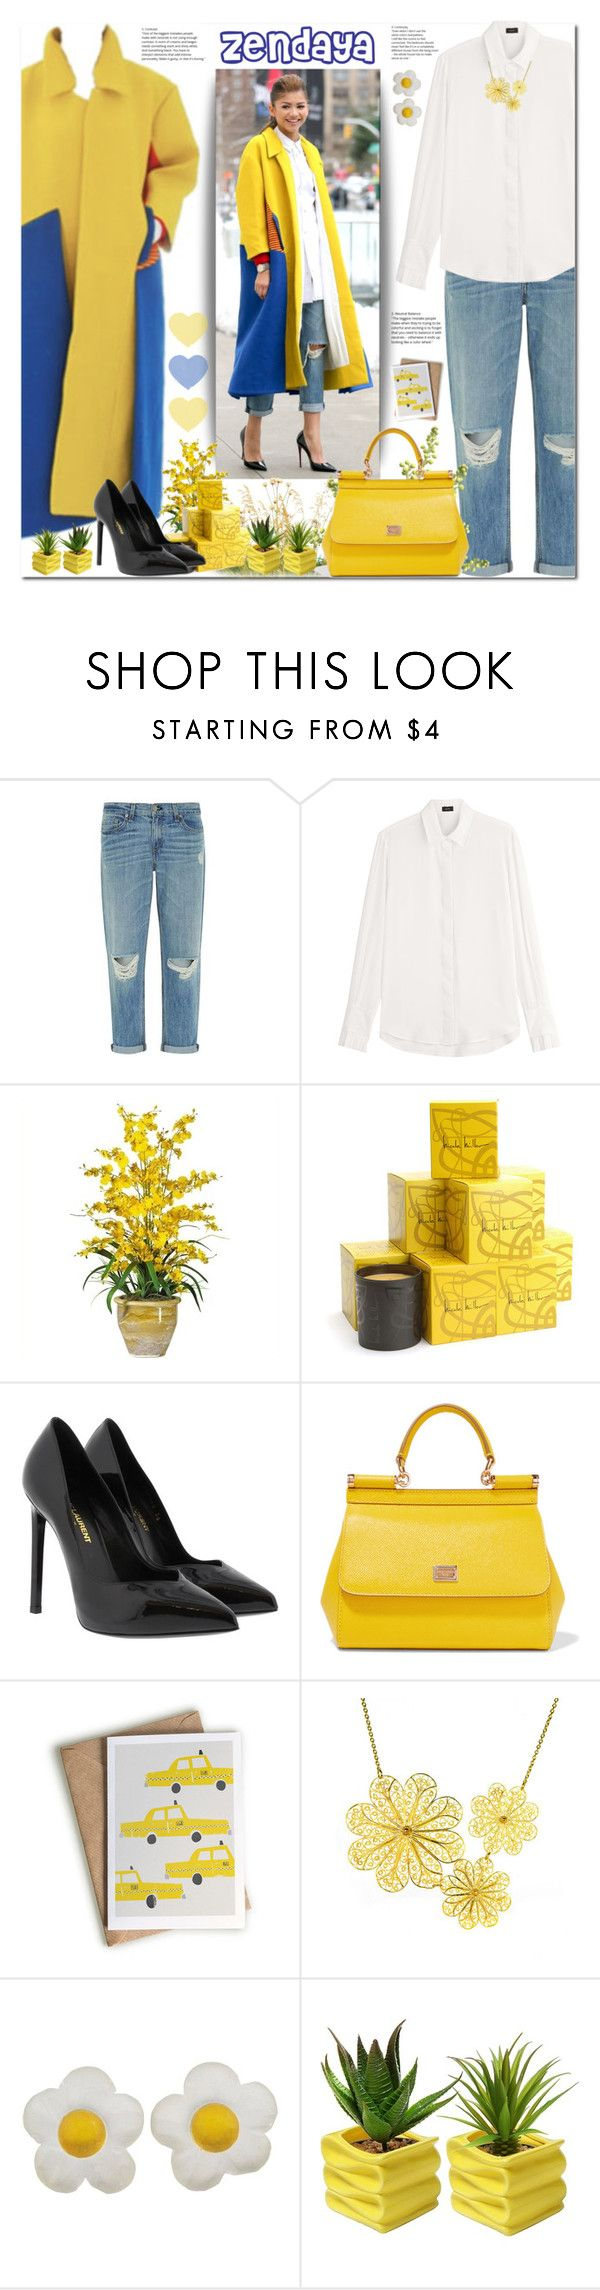 """""""Zendaya's Style"""" by firstclass1 ❤ liked on Polyvore featuring rag & bone, Joseph, Nearly Natural, Nicole Miller, Yves Saint Laurent, Dolce&Gabbana, TAXI and Arabel Lebrusan"""